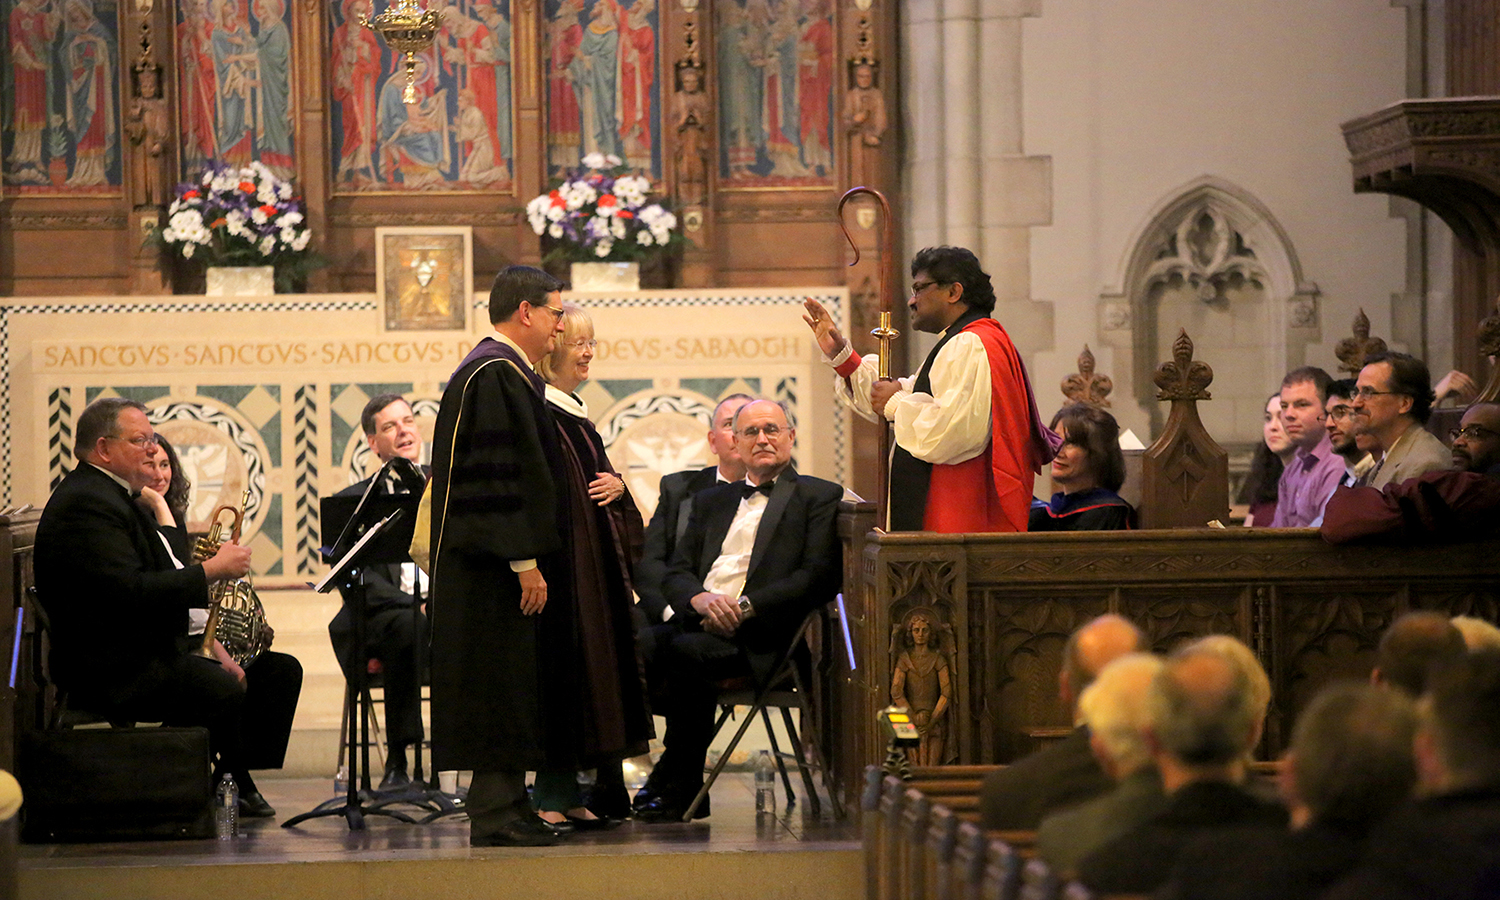 The Rt. Rev. Prince G. Singh, Bishop of the Episcopal Diocese of Rochester and HWS Trustee, blesses Mark D. Gearan and Mary Herlihy Gearan during the 2017 Baccalaureate celebration in Trinity Church.